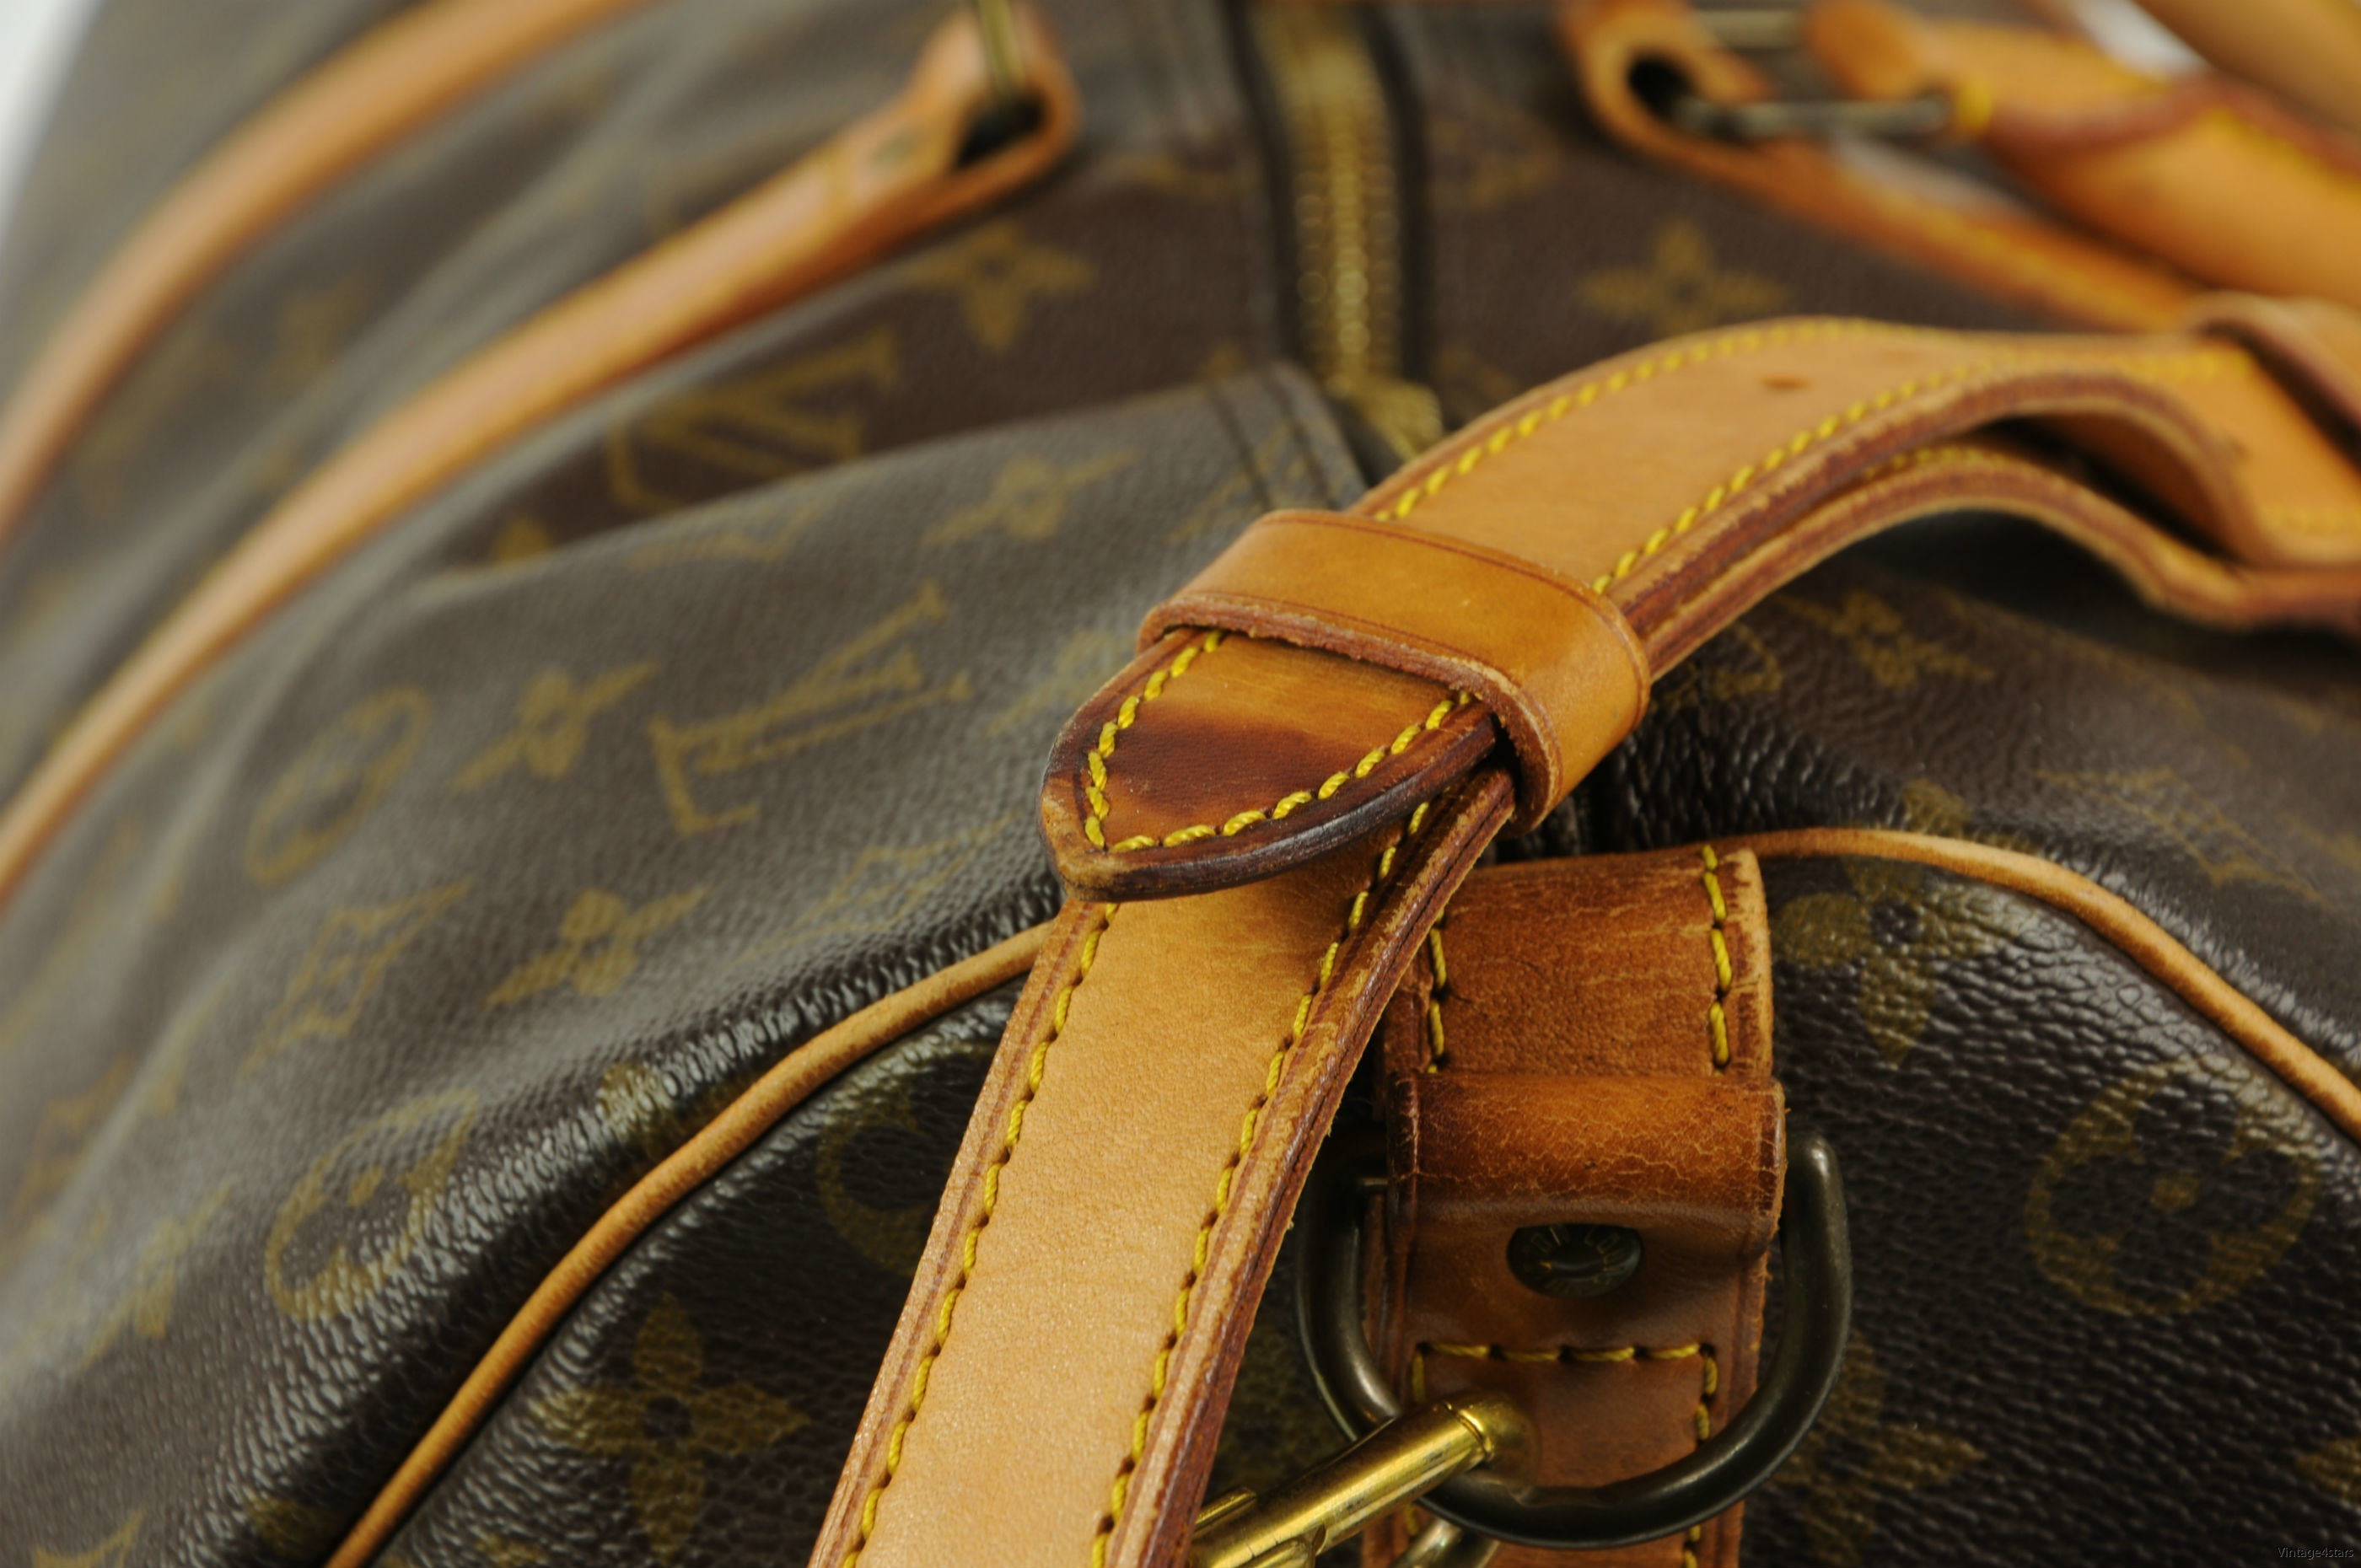 Louis Vuitton Keepall 50 8